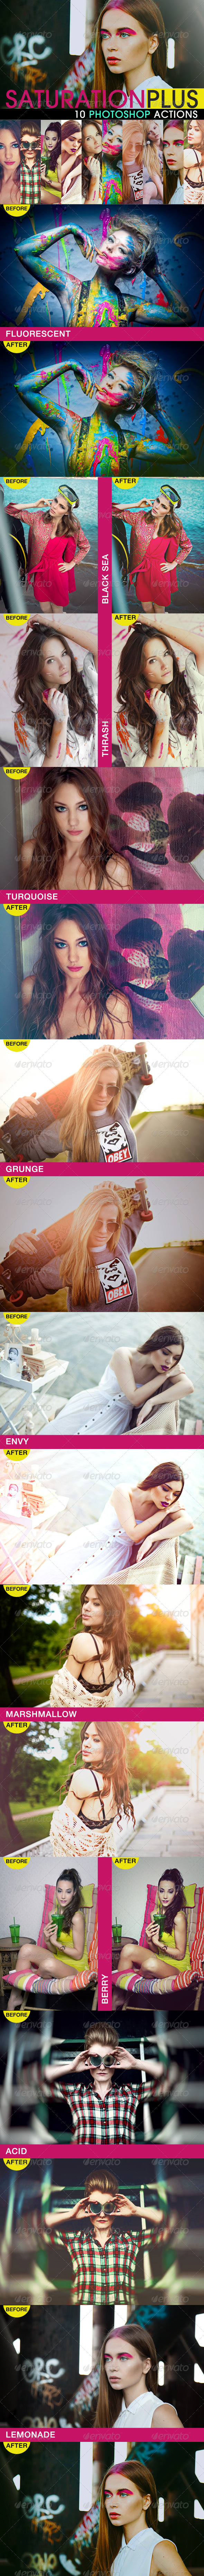 GraphicRiver SaturationPLUS Photoshop Actions 6059649